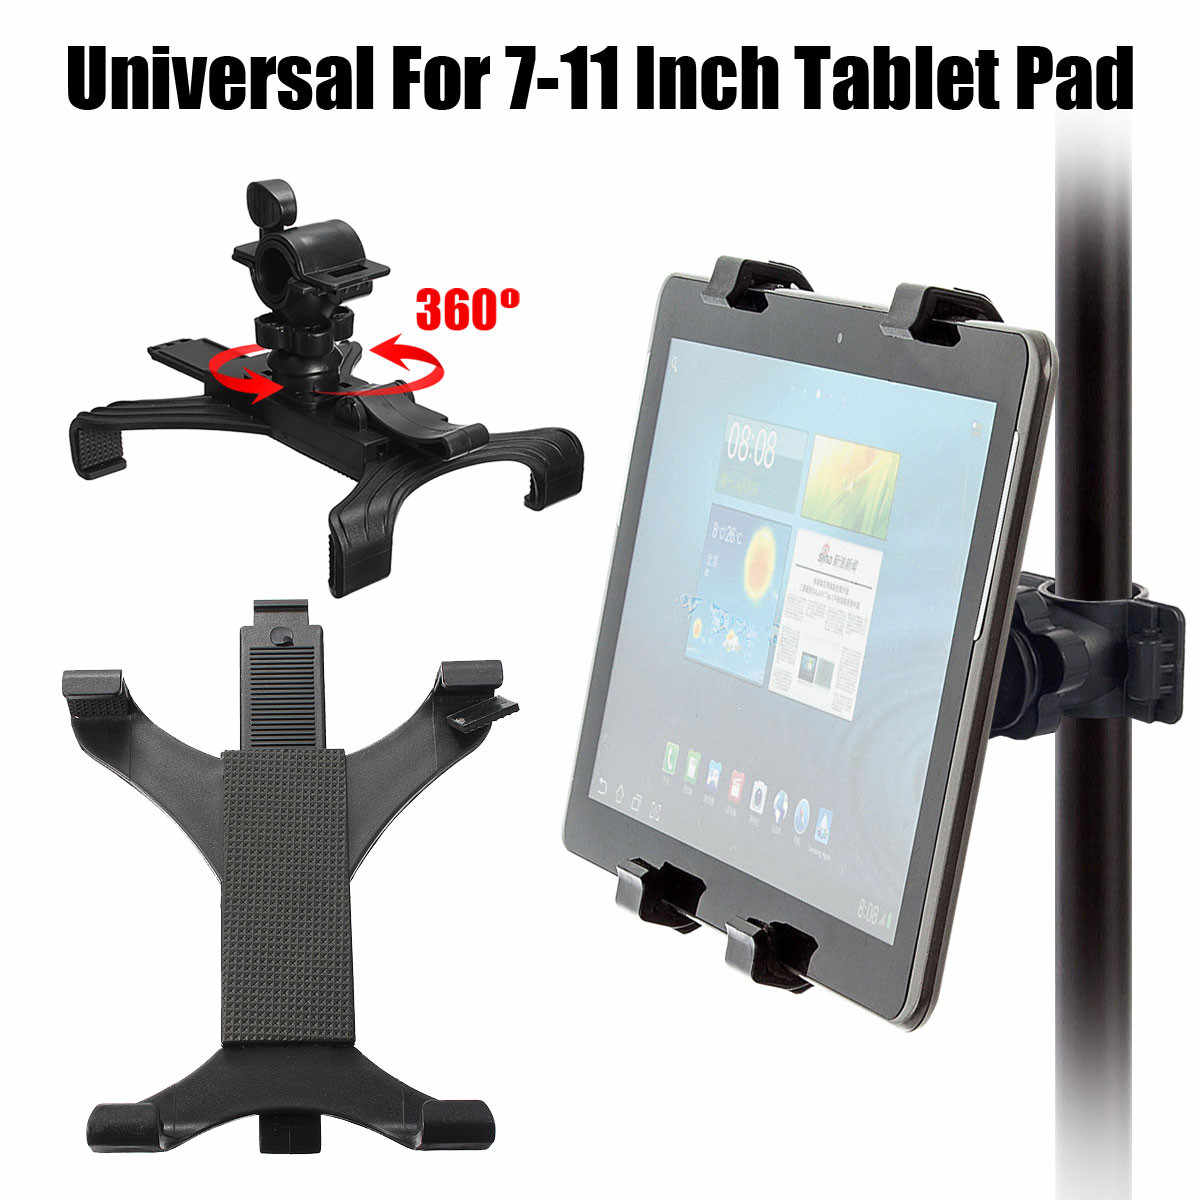 Support de montage Gym tapis de course vélo guidon Clip support sport réglable support de tablette universel 7-10 pouces pour iPad pour tablette